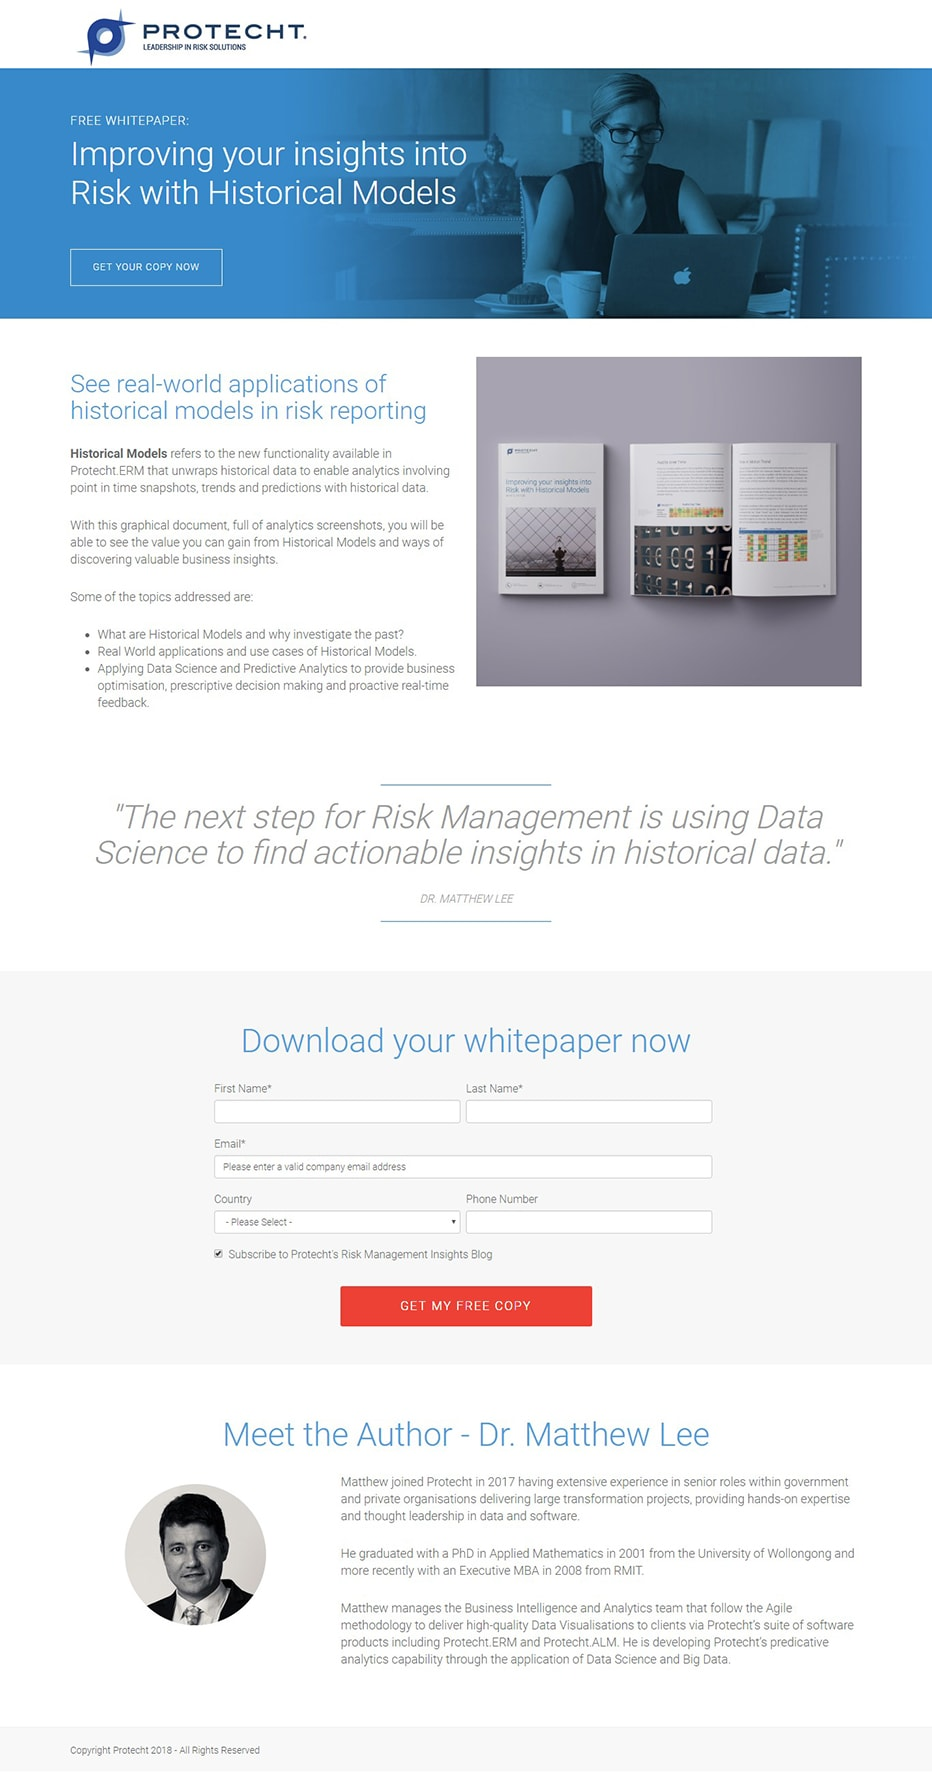 Protecht whitepaper landing page